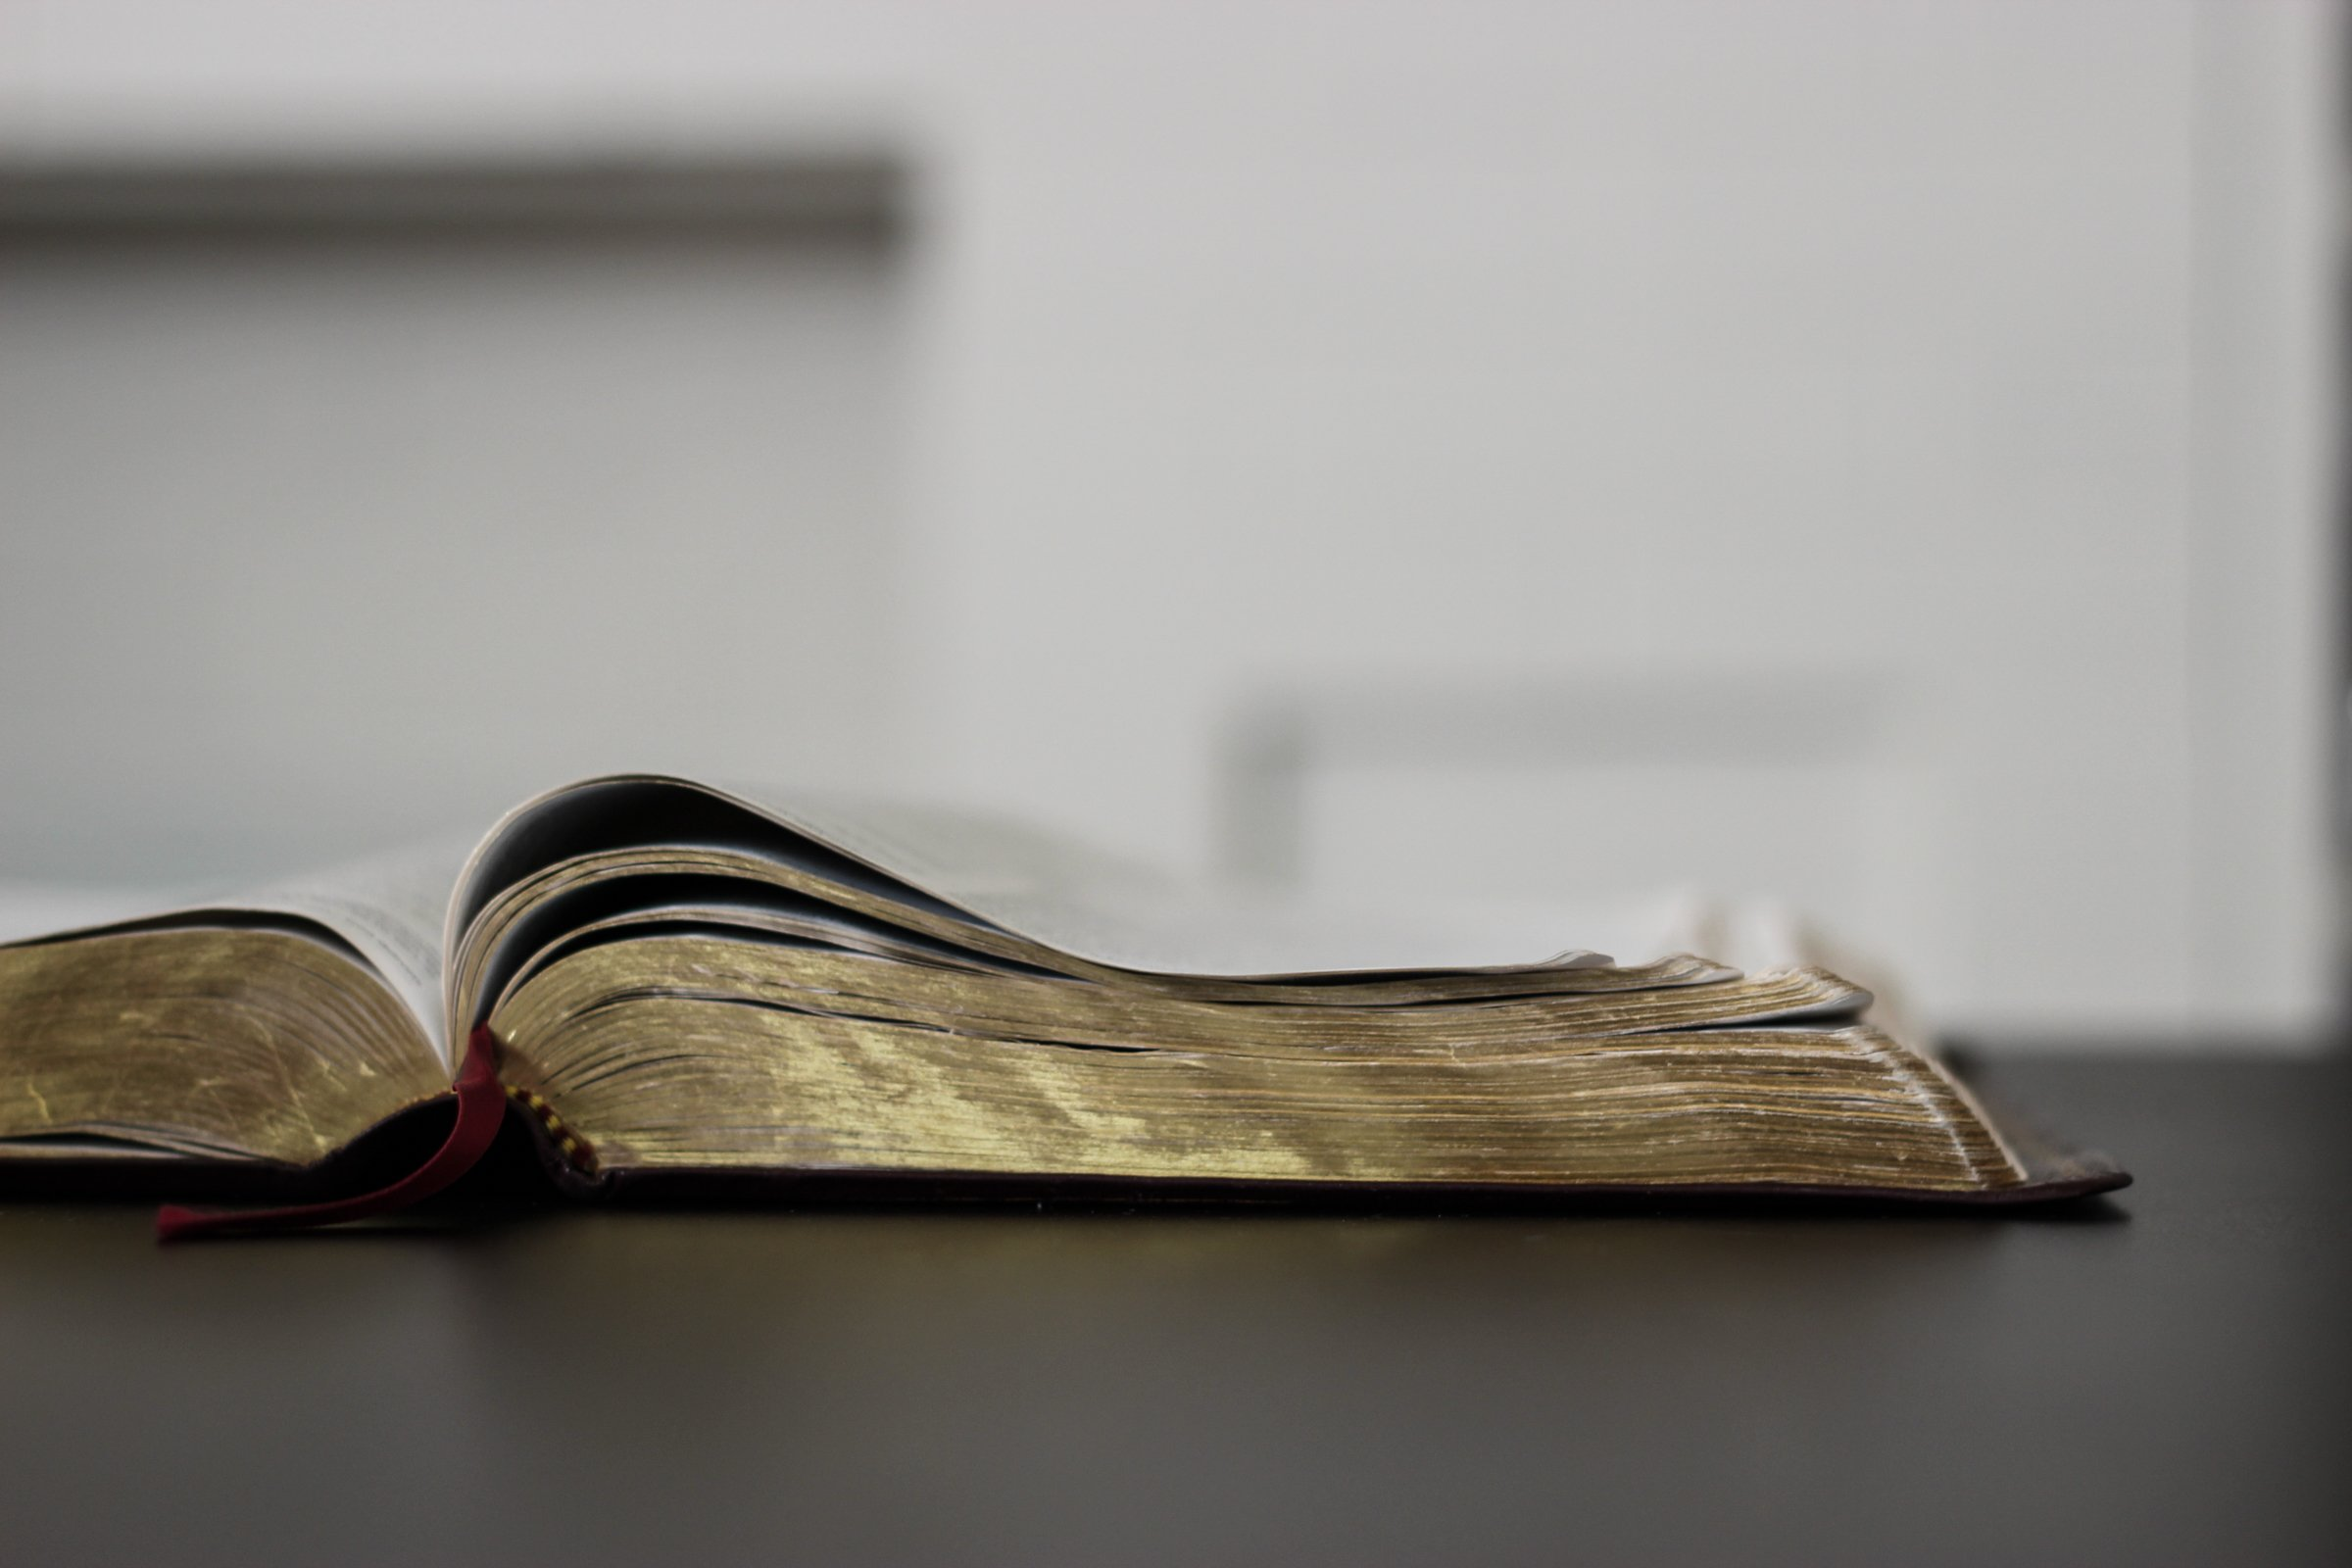 free stock photo of open bible on dark table